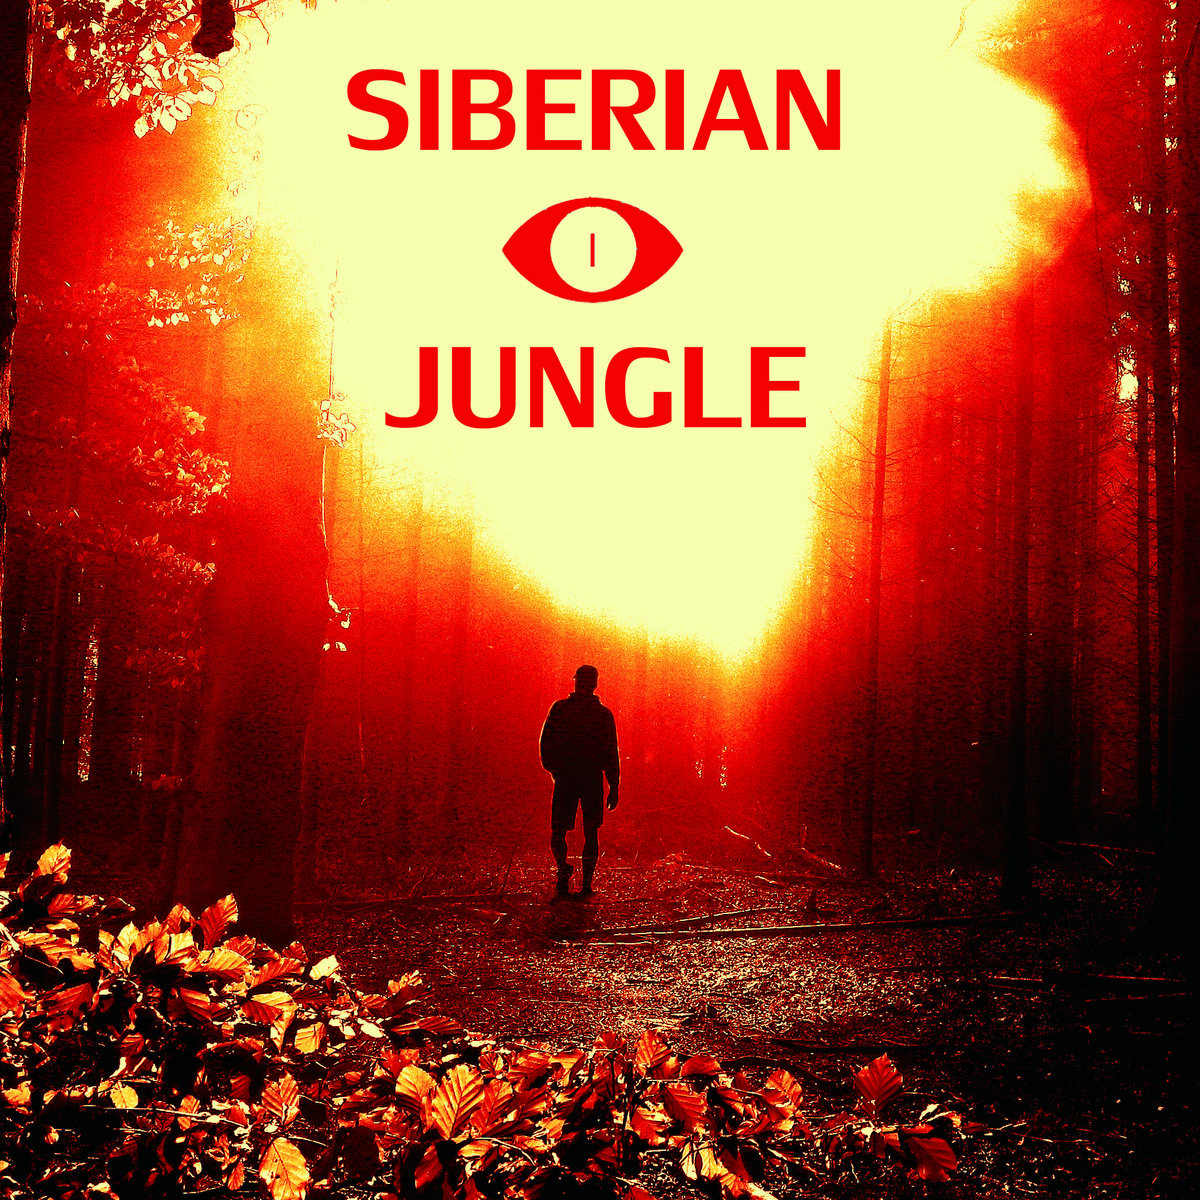 DJ DED - Japan Funk @ 'Siberian Jungle - Volume 1' album (atmospheric drum'n'bass, electronic)